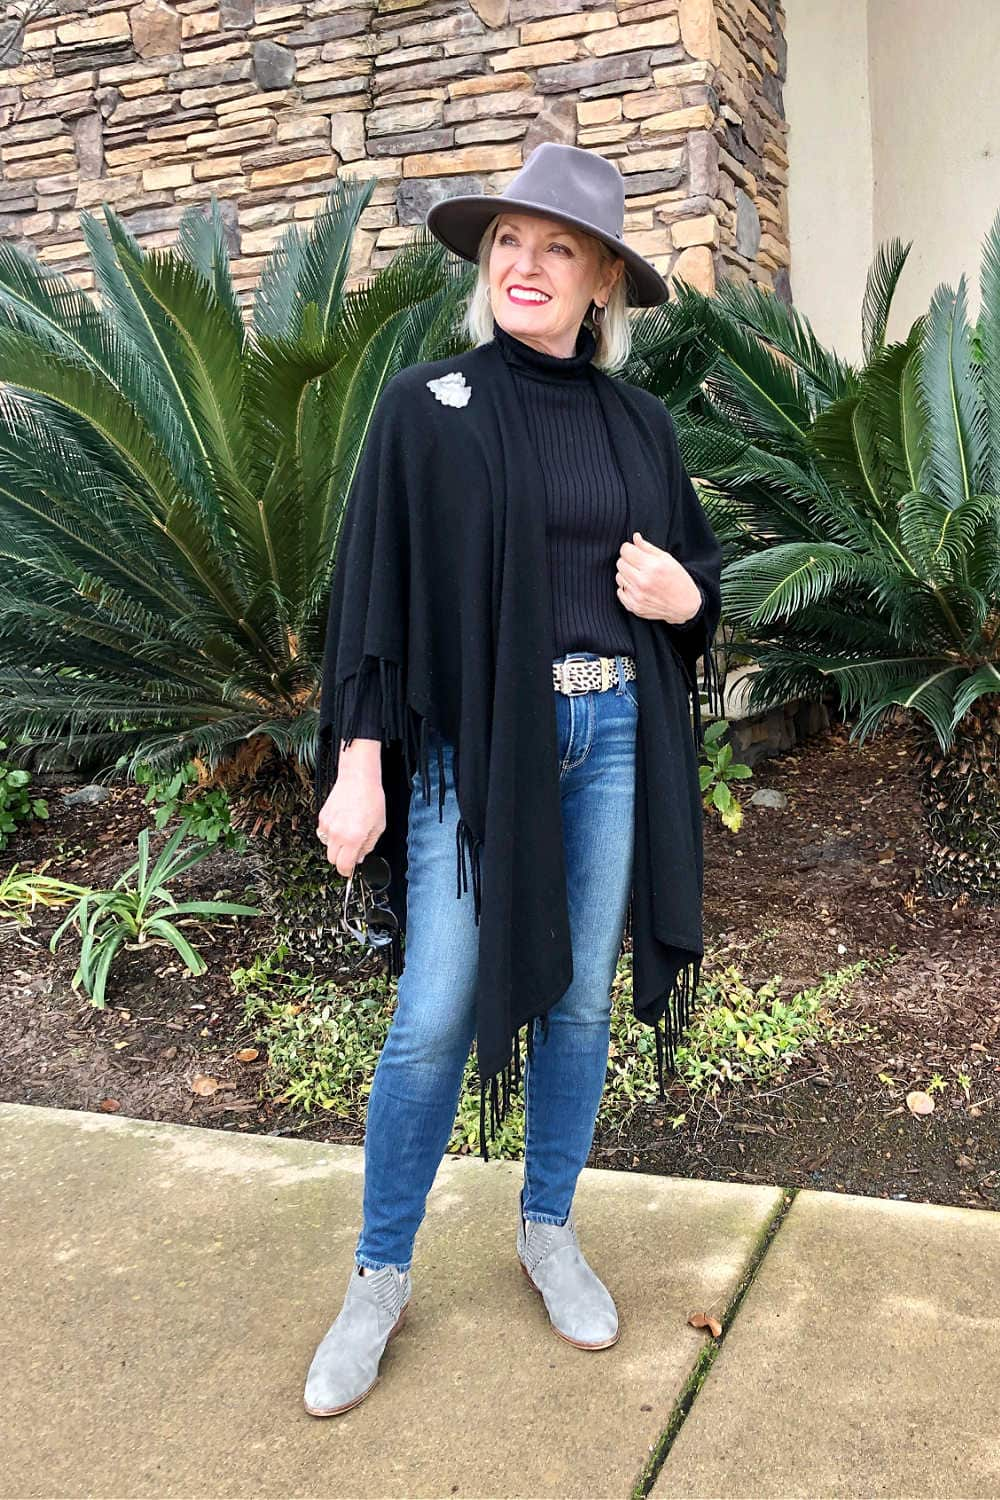 over 50 bogger jennifer of a well styled life wearing black runana and gray fedora